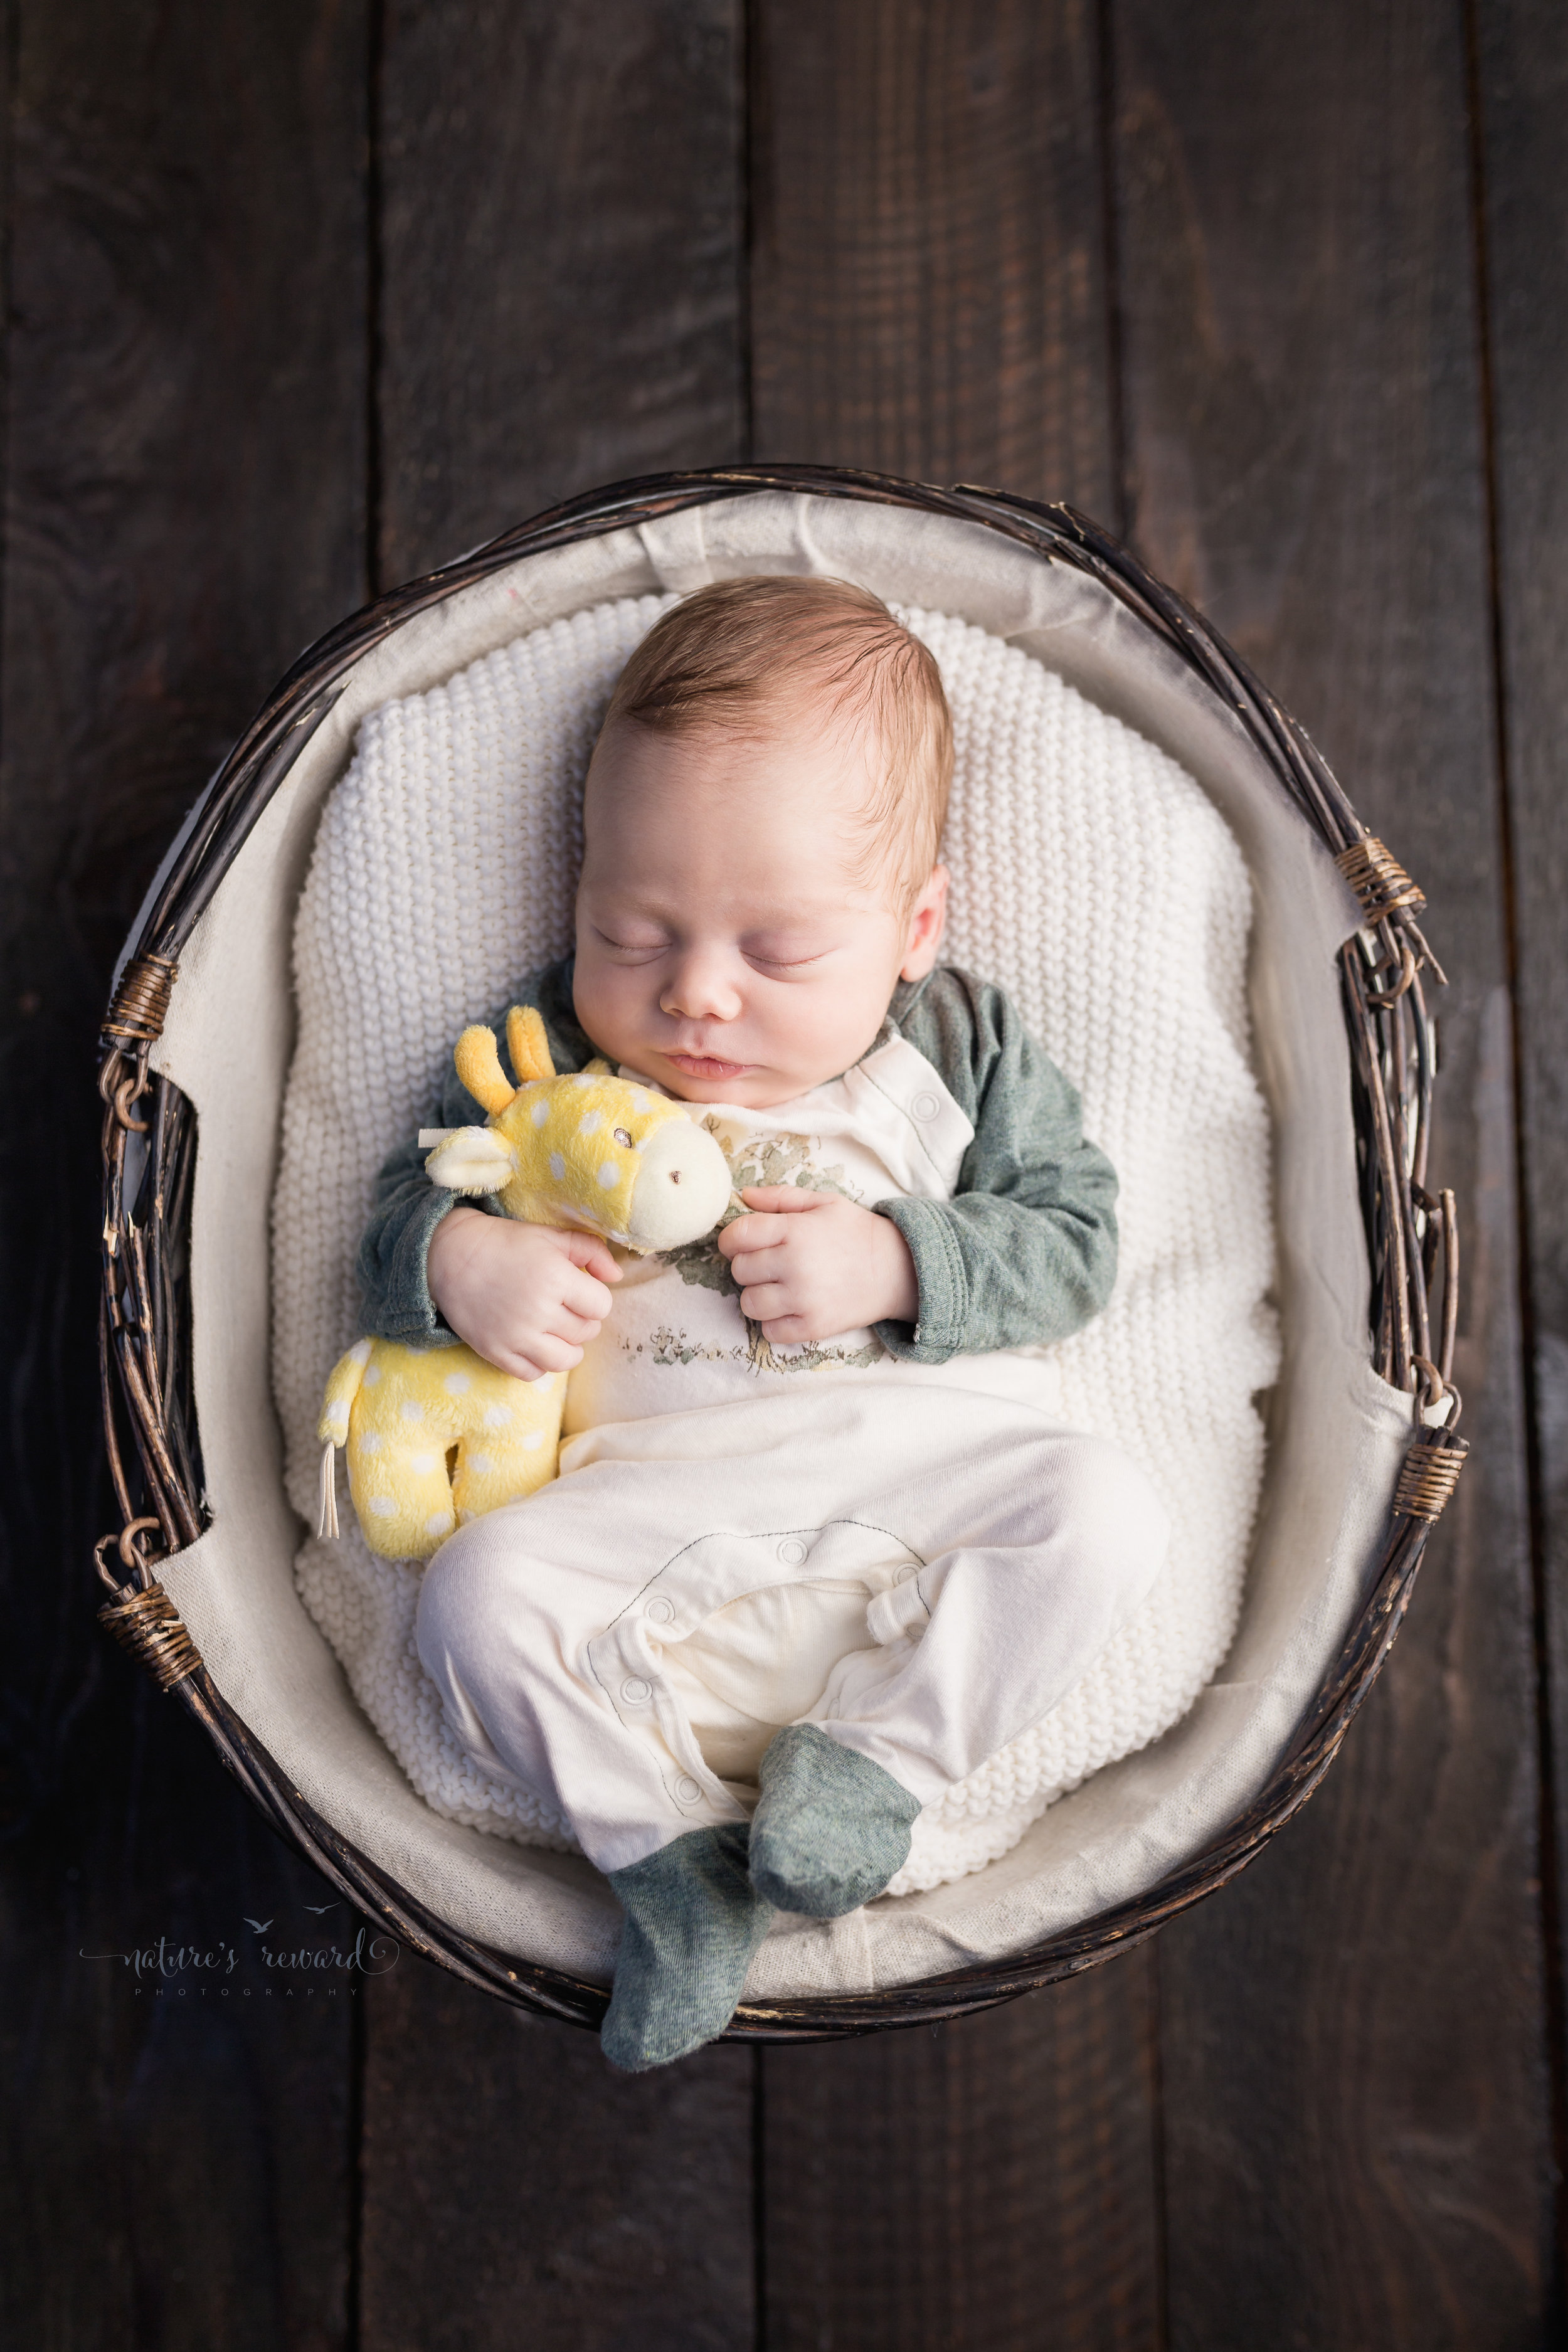 The color version of a newborn baby boy wearing an outfit brought from home of soft greens and white while holding his very own giraffe white nestled in a basket by Southern California newborn and family photographer Nature's Reward Photography